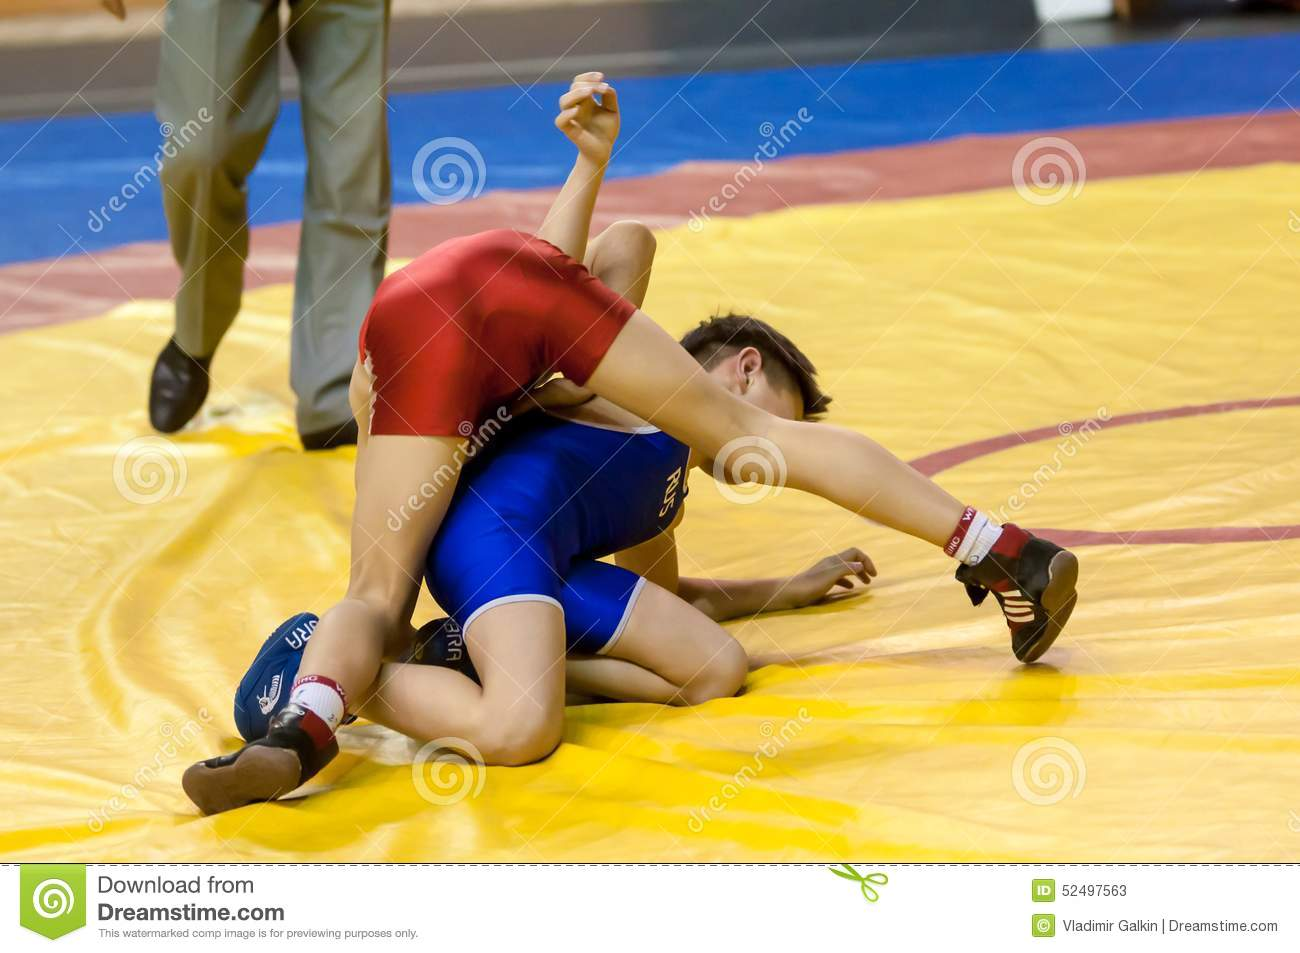 Wrestling world championships amateur